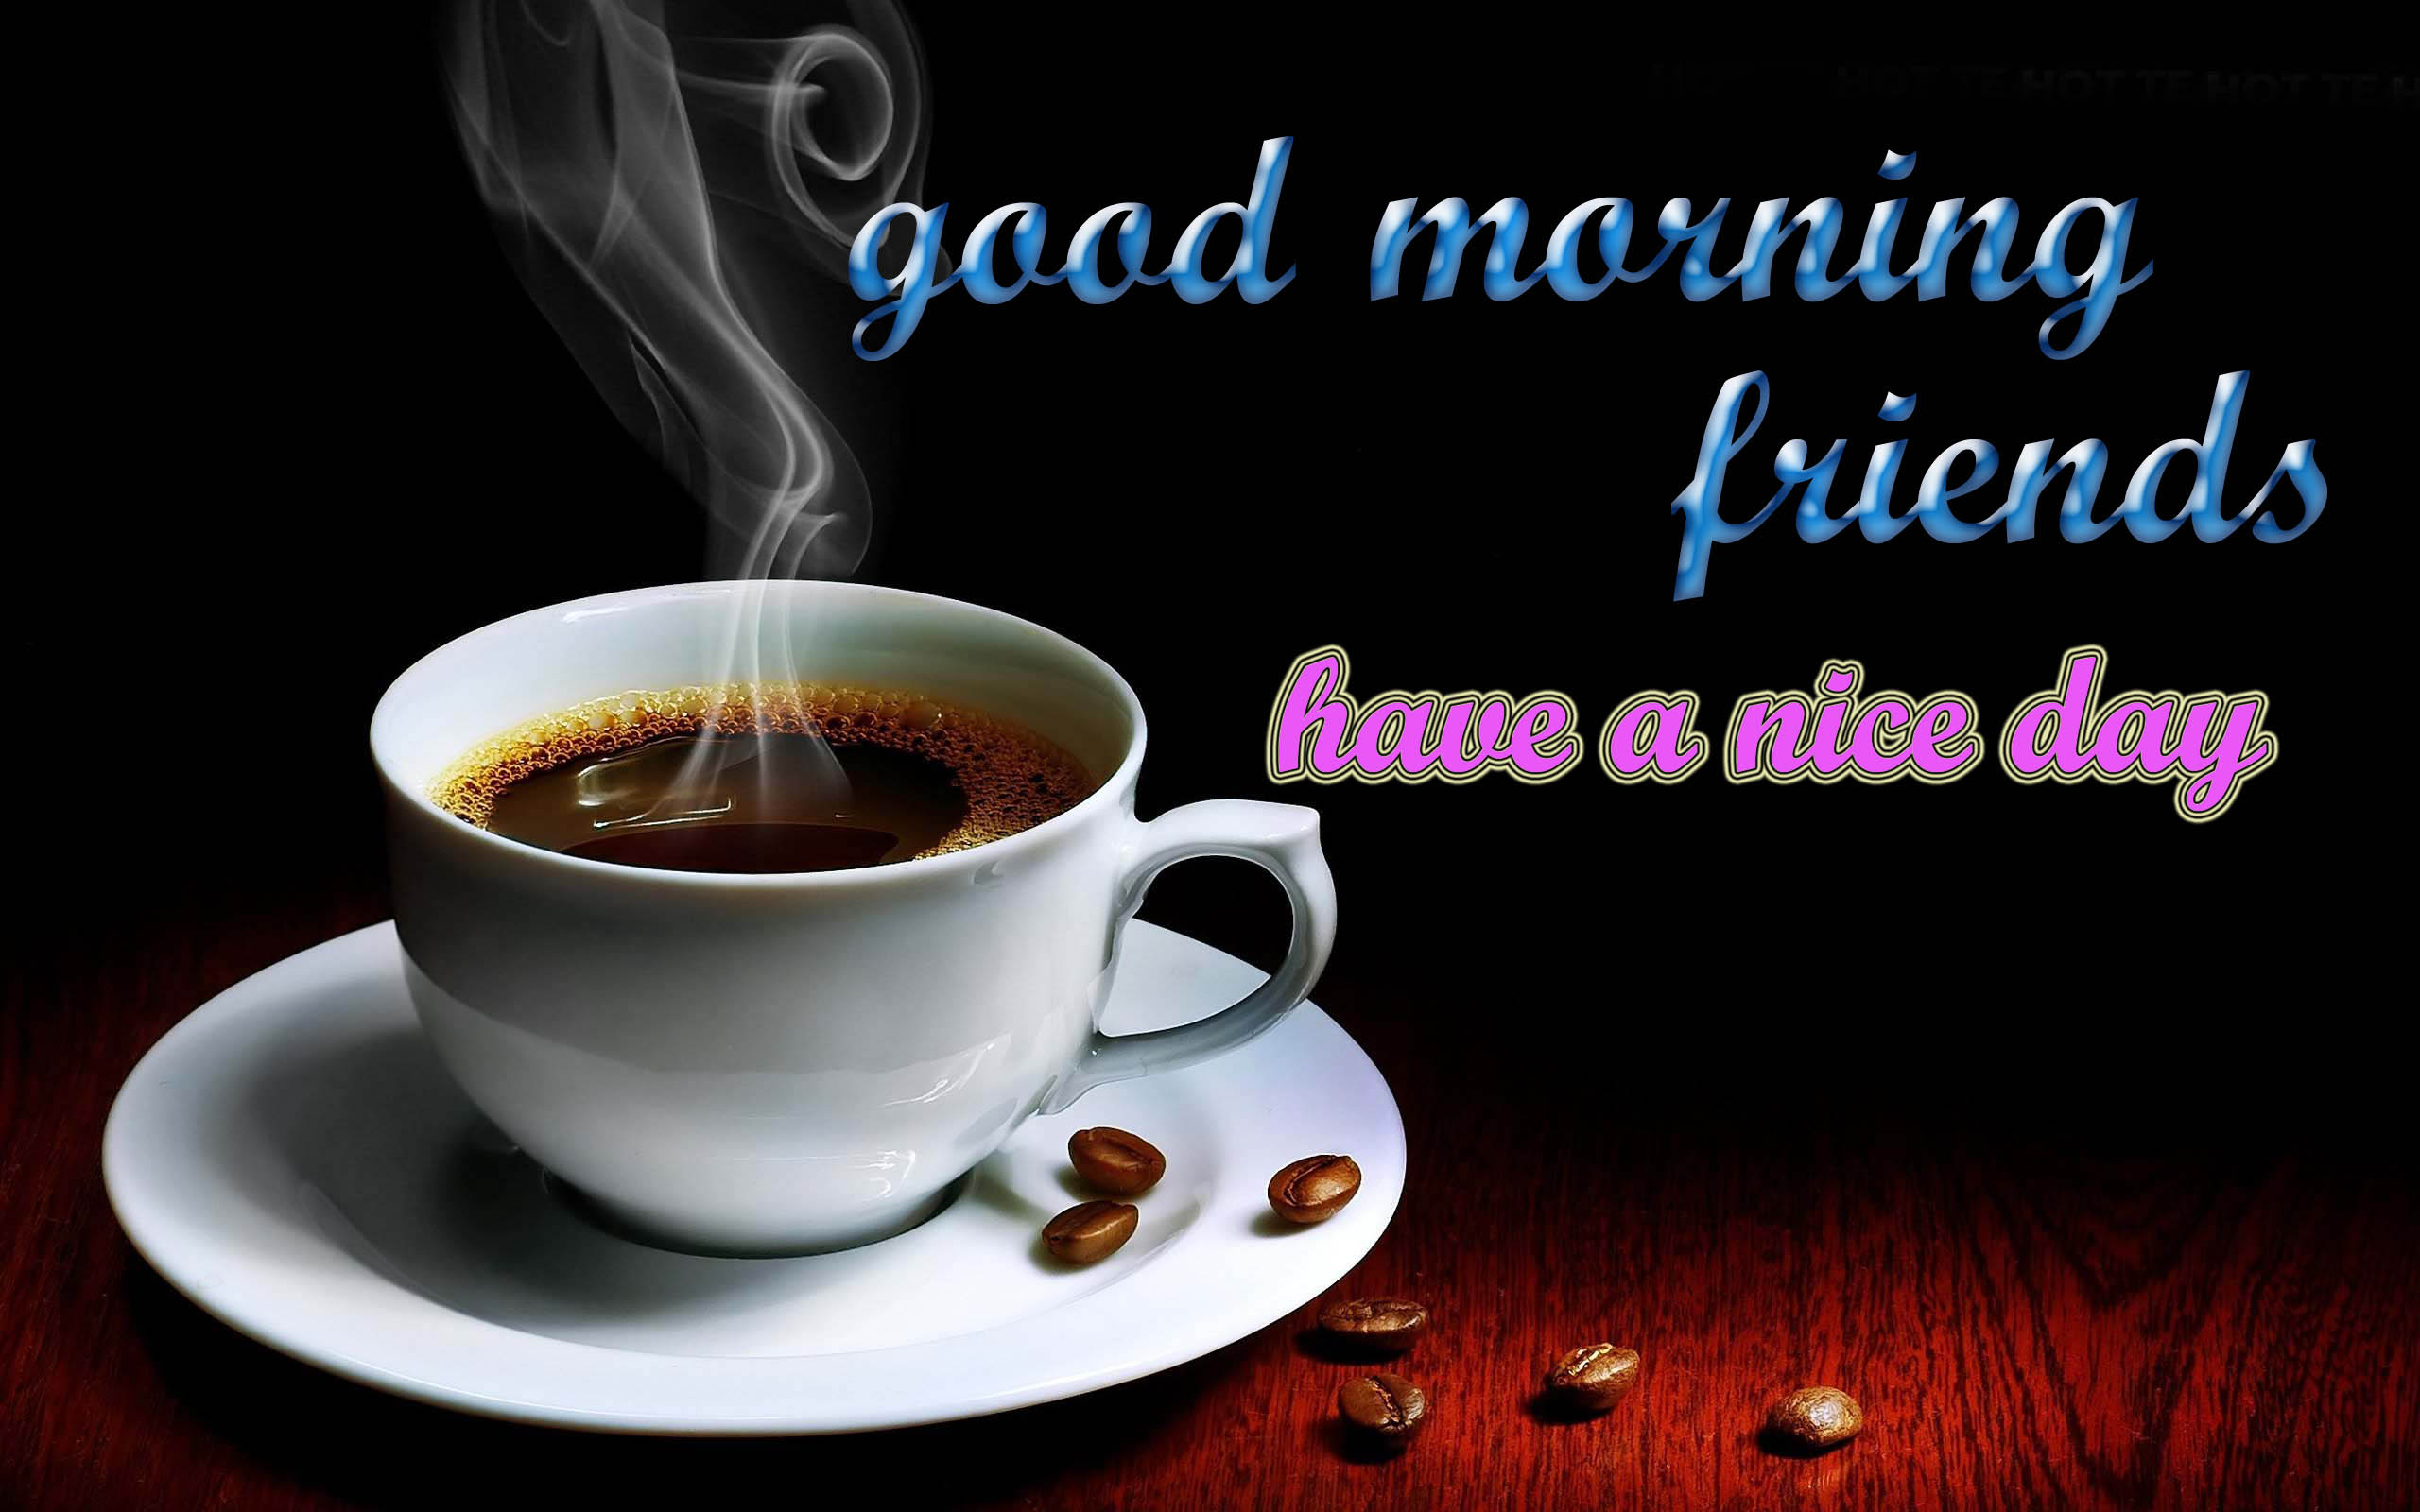 Good Morning Wishes For Friend Pictures Images Page 37